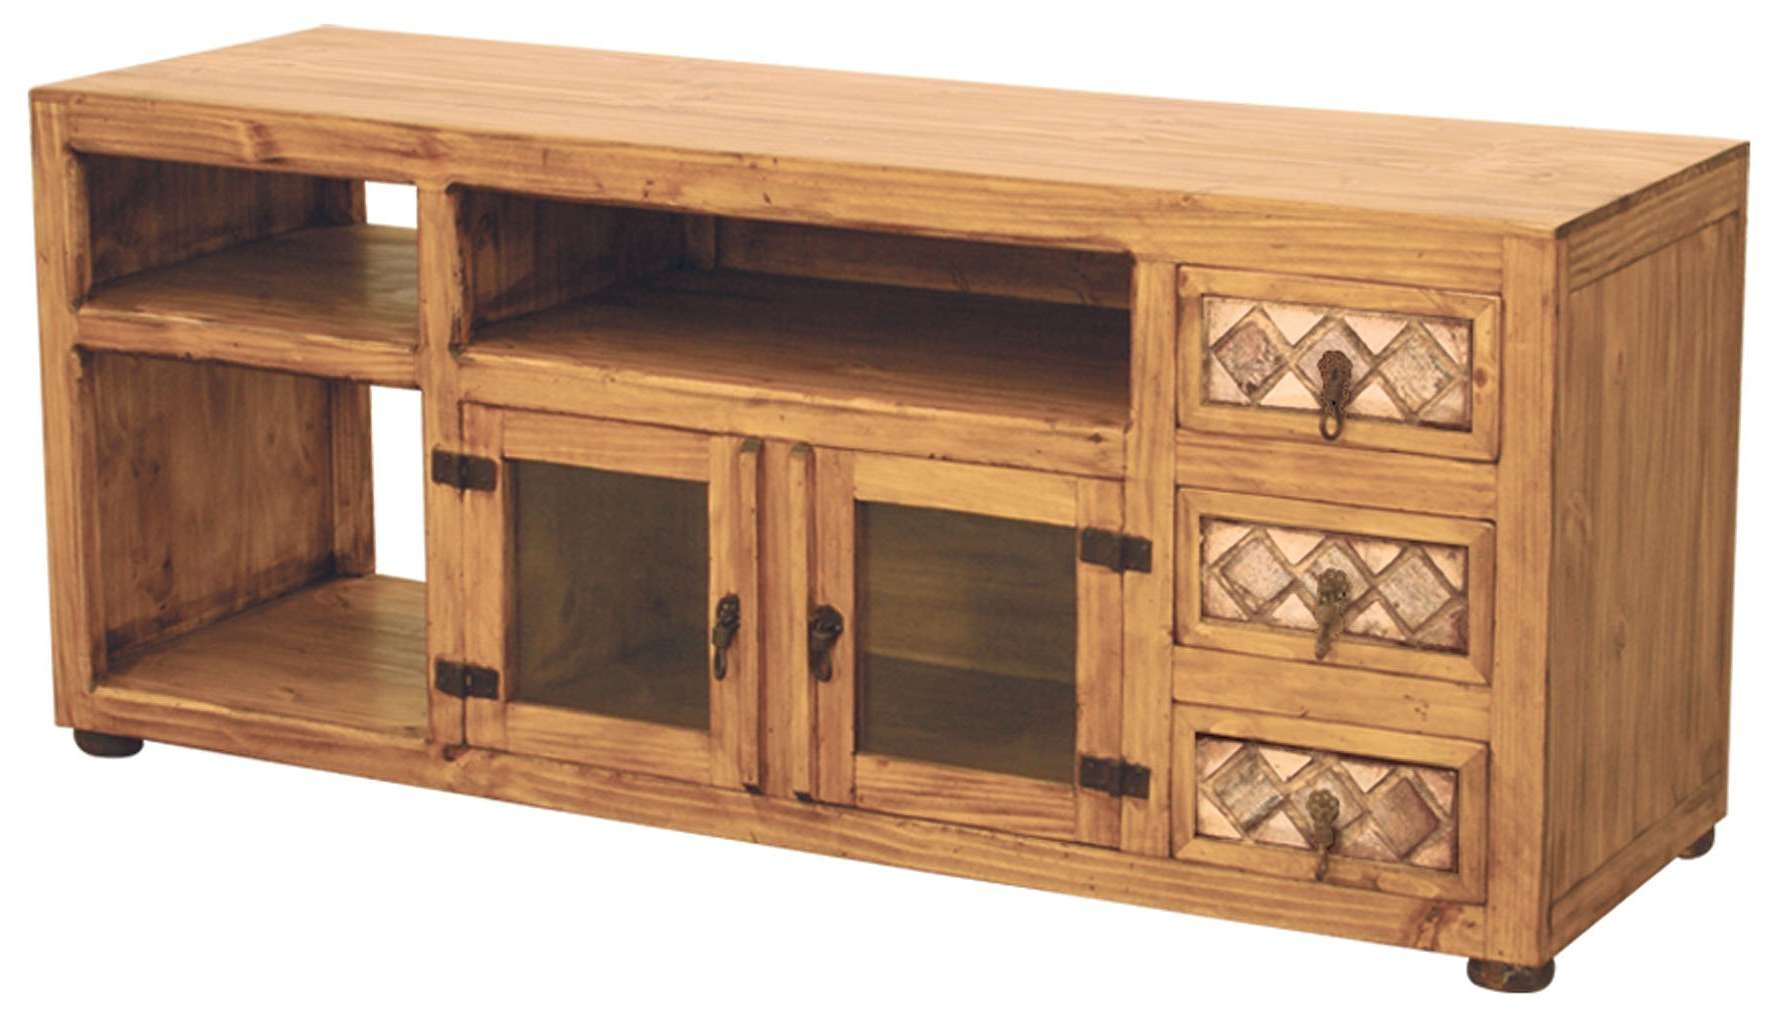 Pine Furniture Tv Stand Decor | Gyleshomes Within Pine Wood Tv Stands (View 13 of 15)